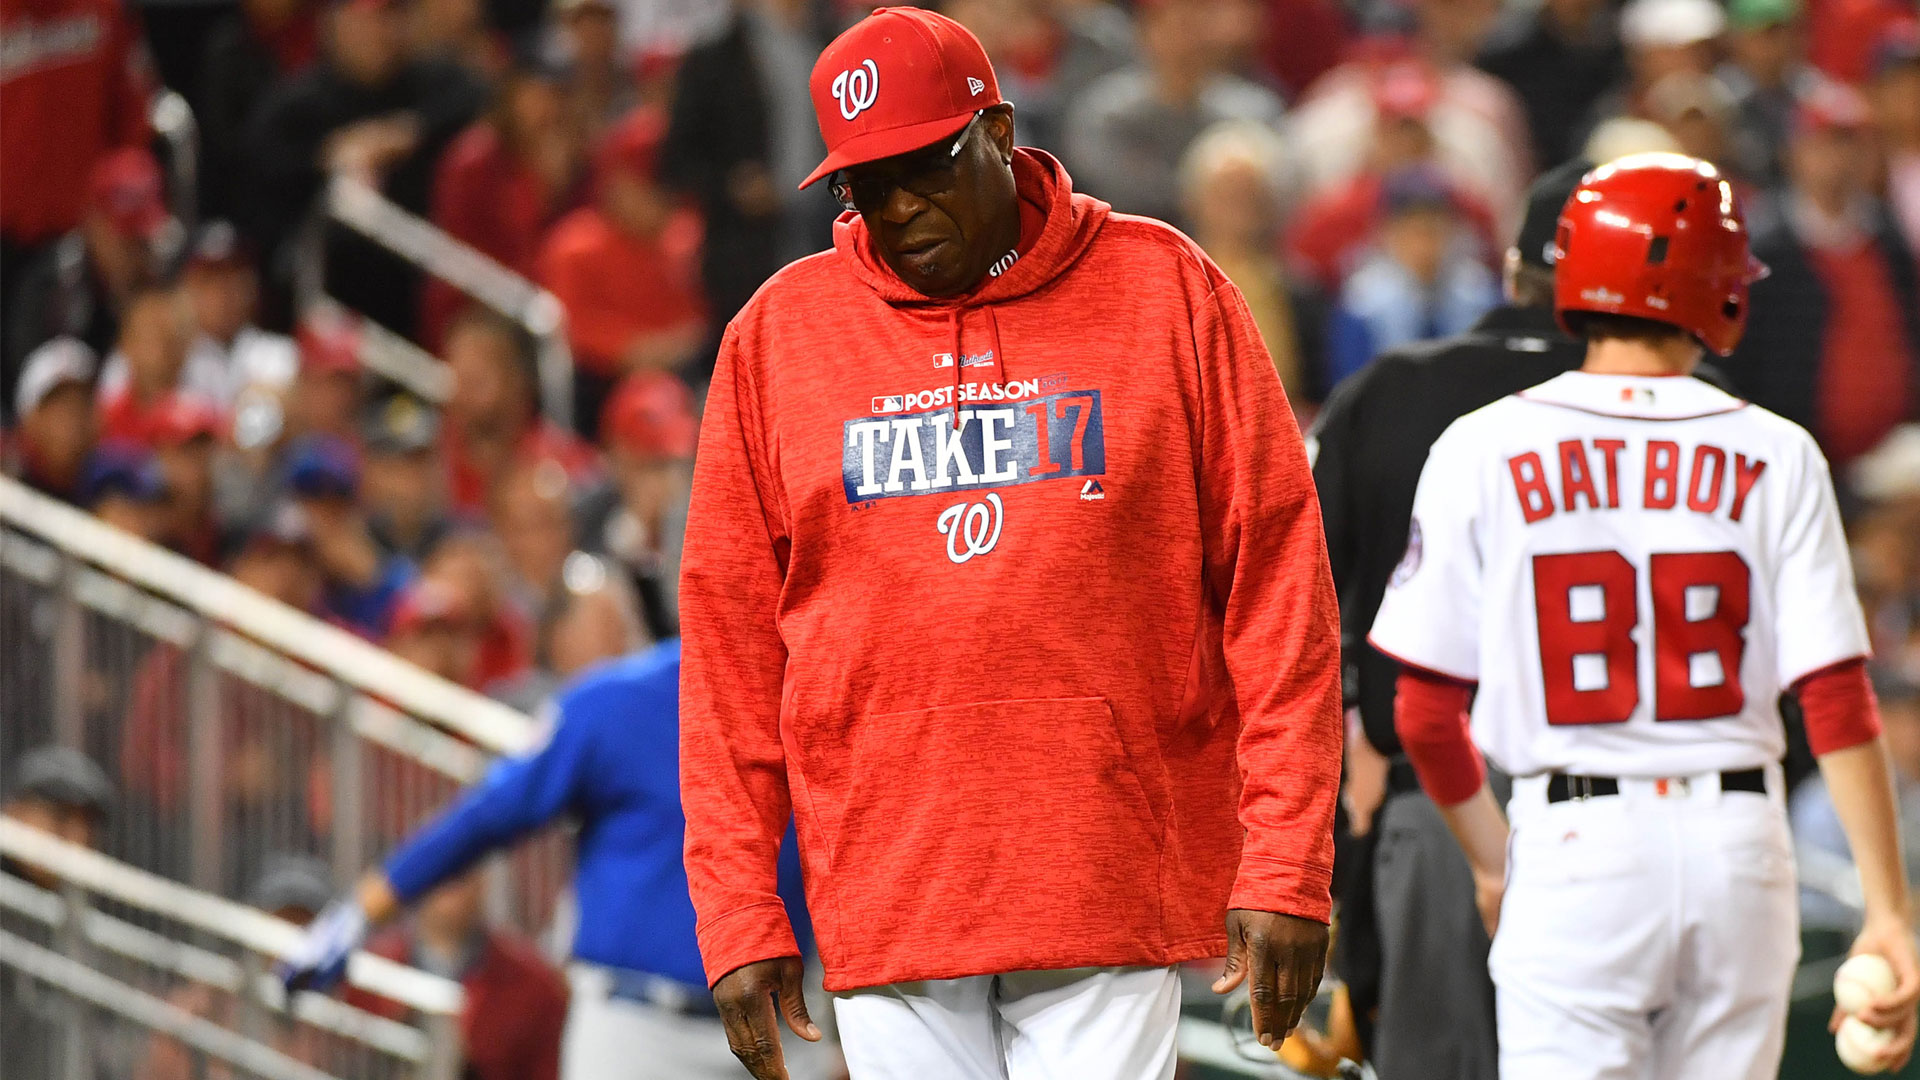 Dusty Baker won't return as Nats manager after another playoff disappointment